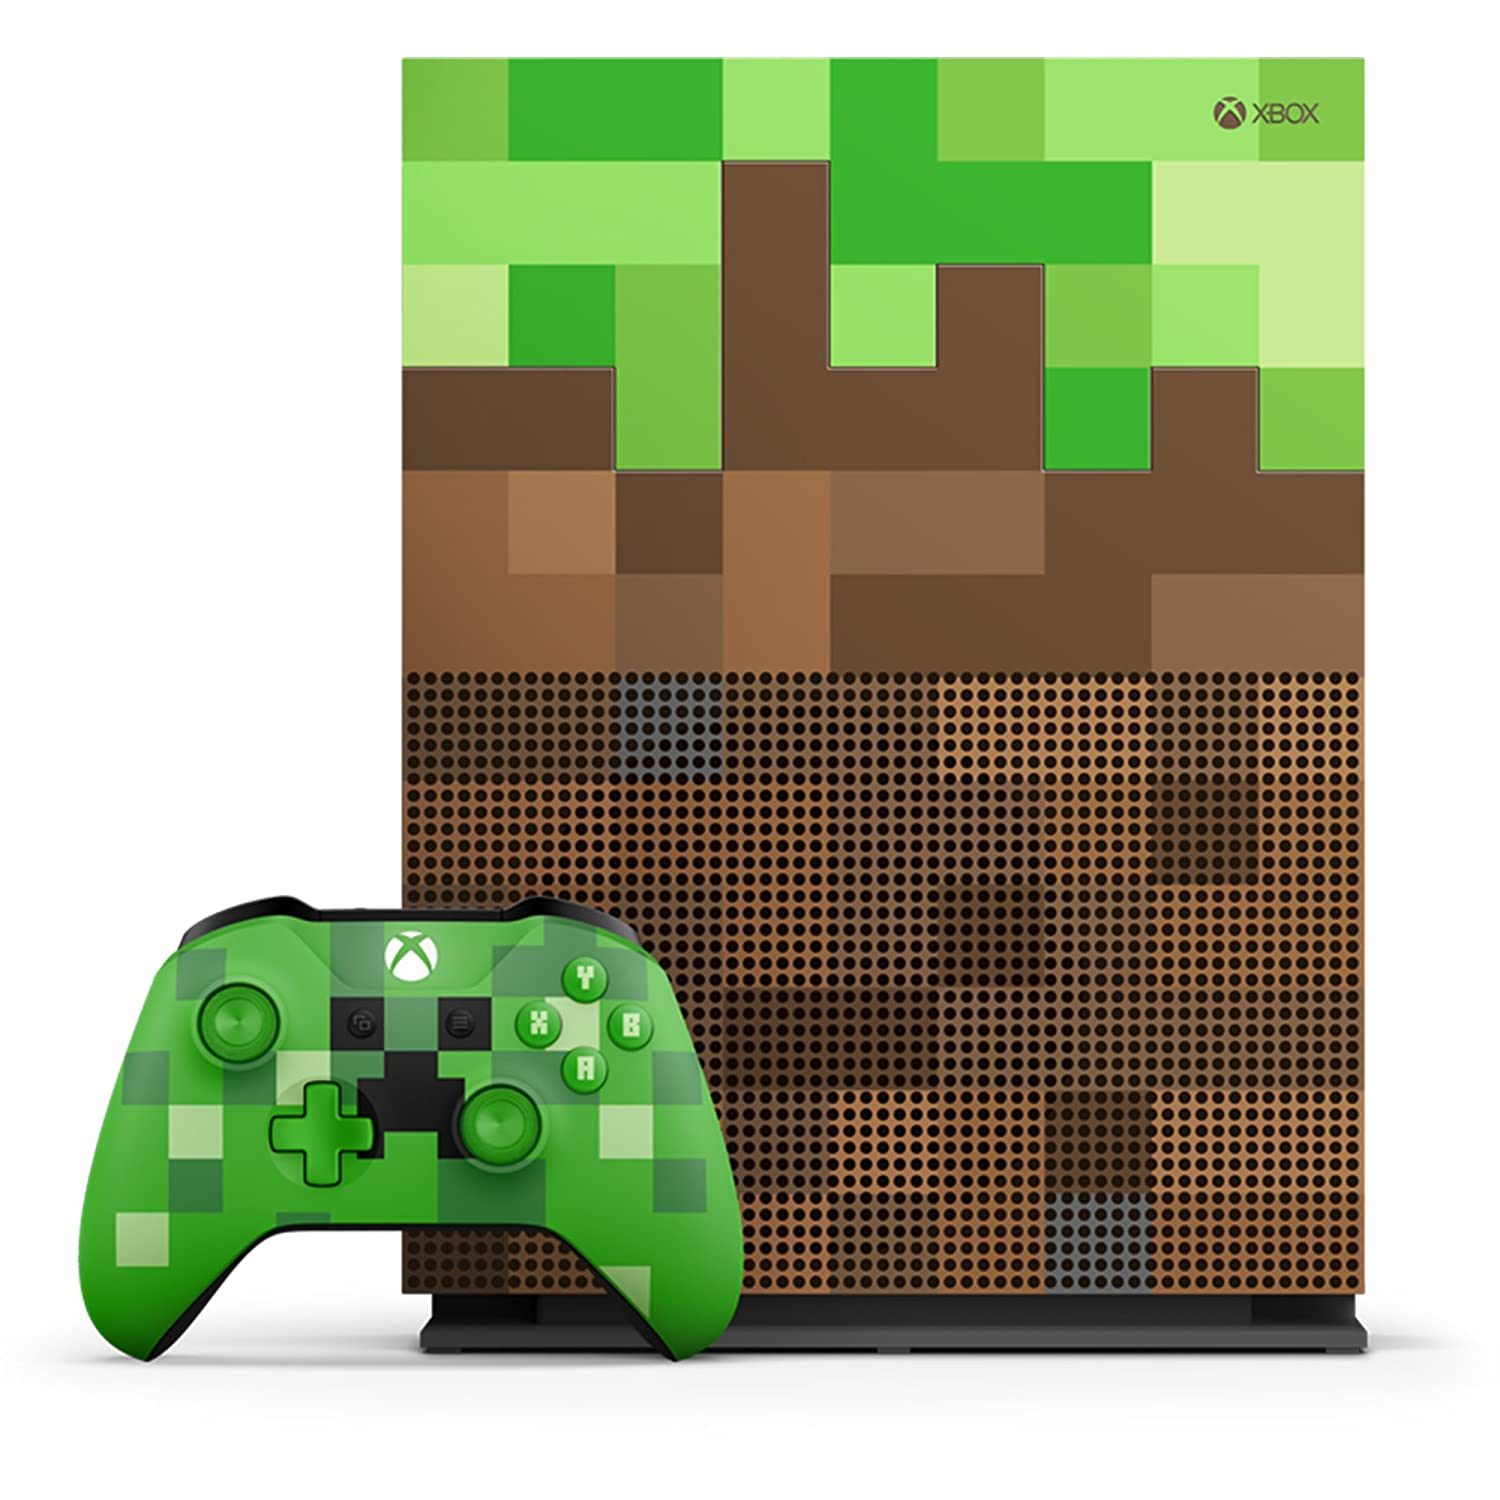 Amazon.com: Xbox One S 1TB Limited Edition Console - Minecraft Bundle  [Discontinued]: Video Games